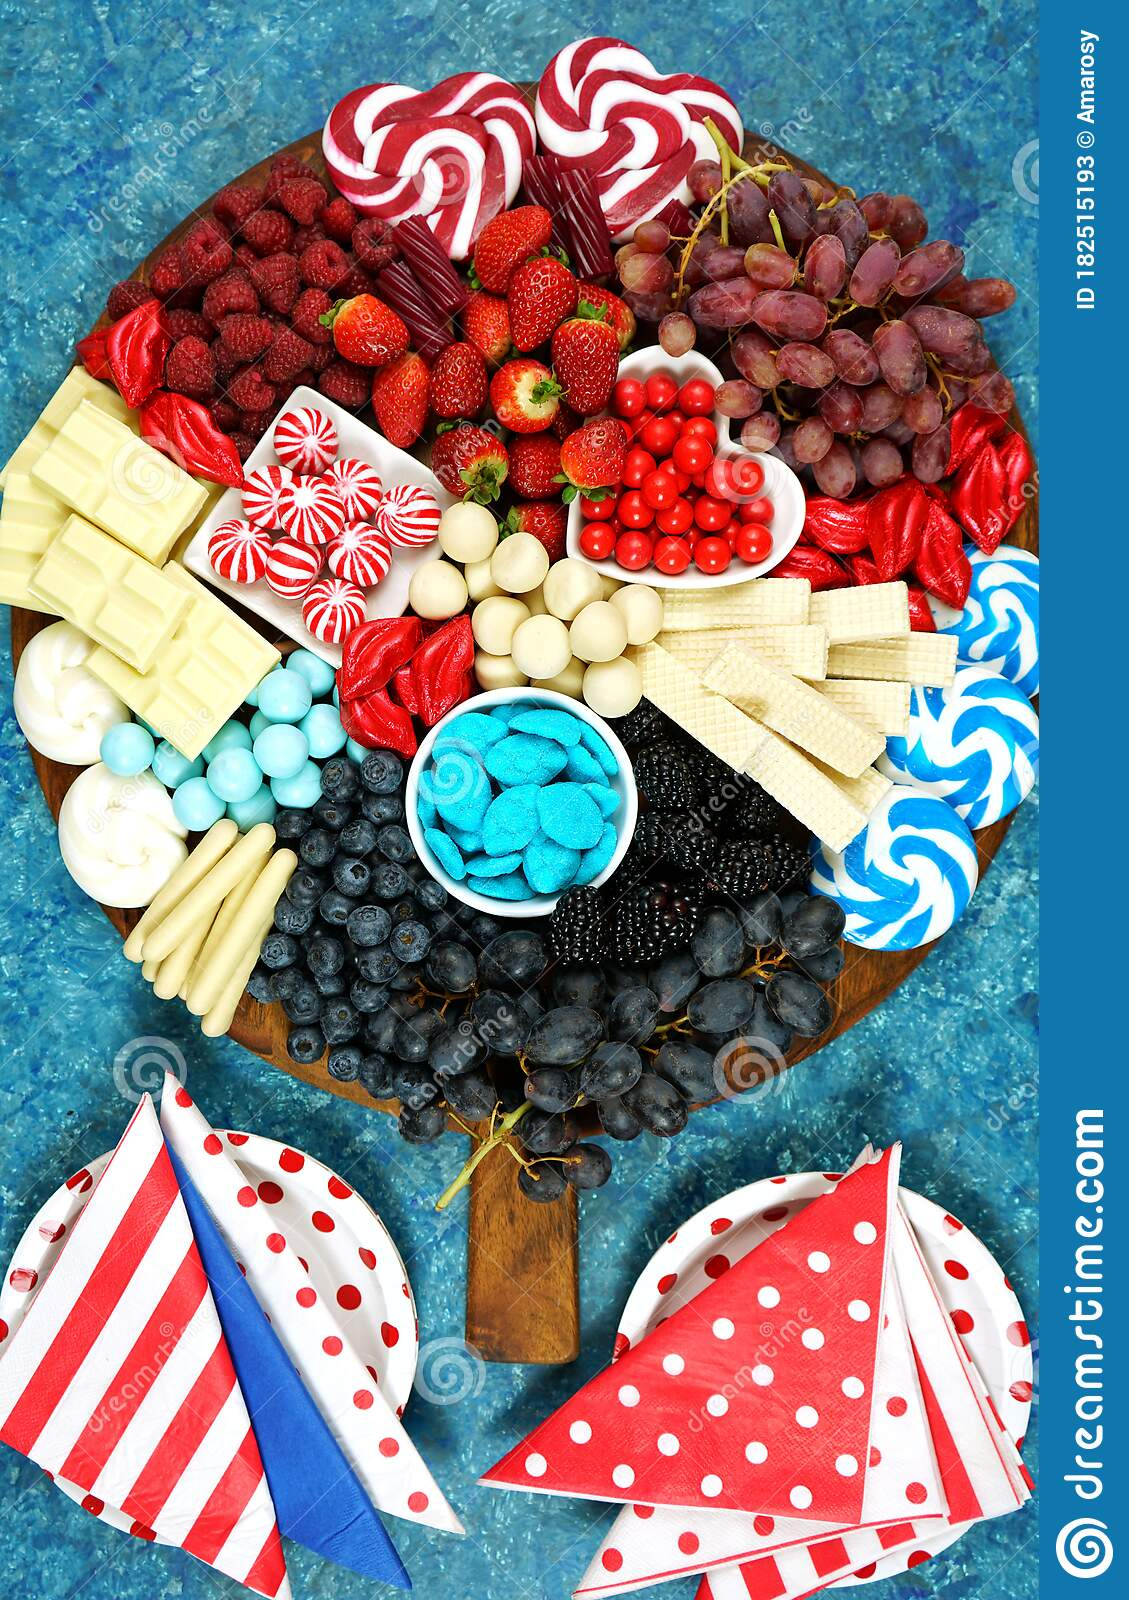 Patriotic Red White And Blue Charcuterie Dessert Grazing Platter Stock Image Image Of Celebration Food 182515193